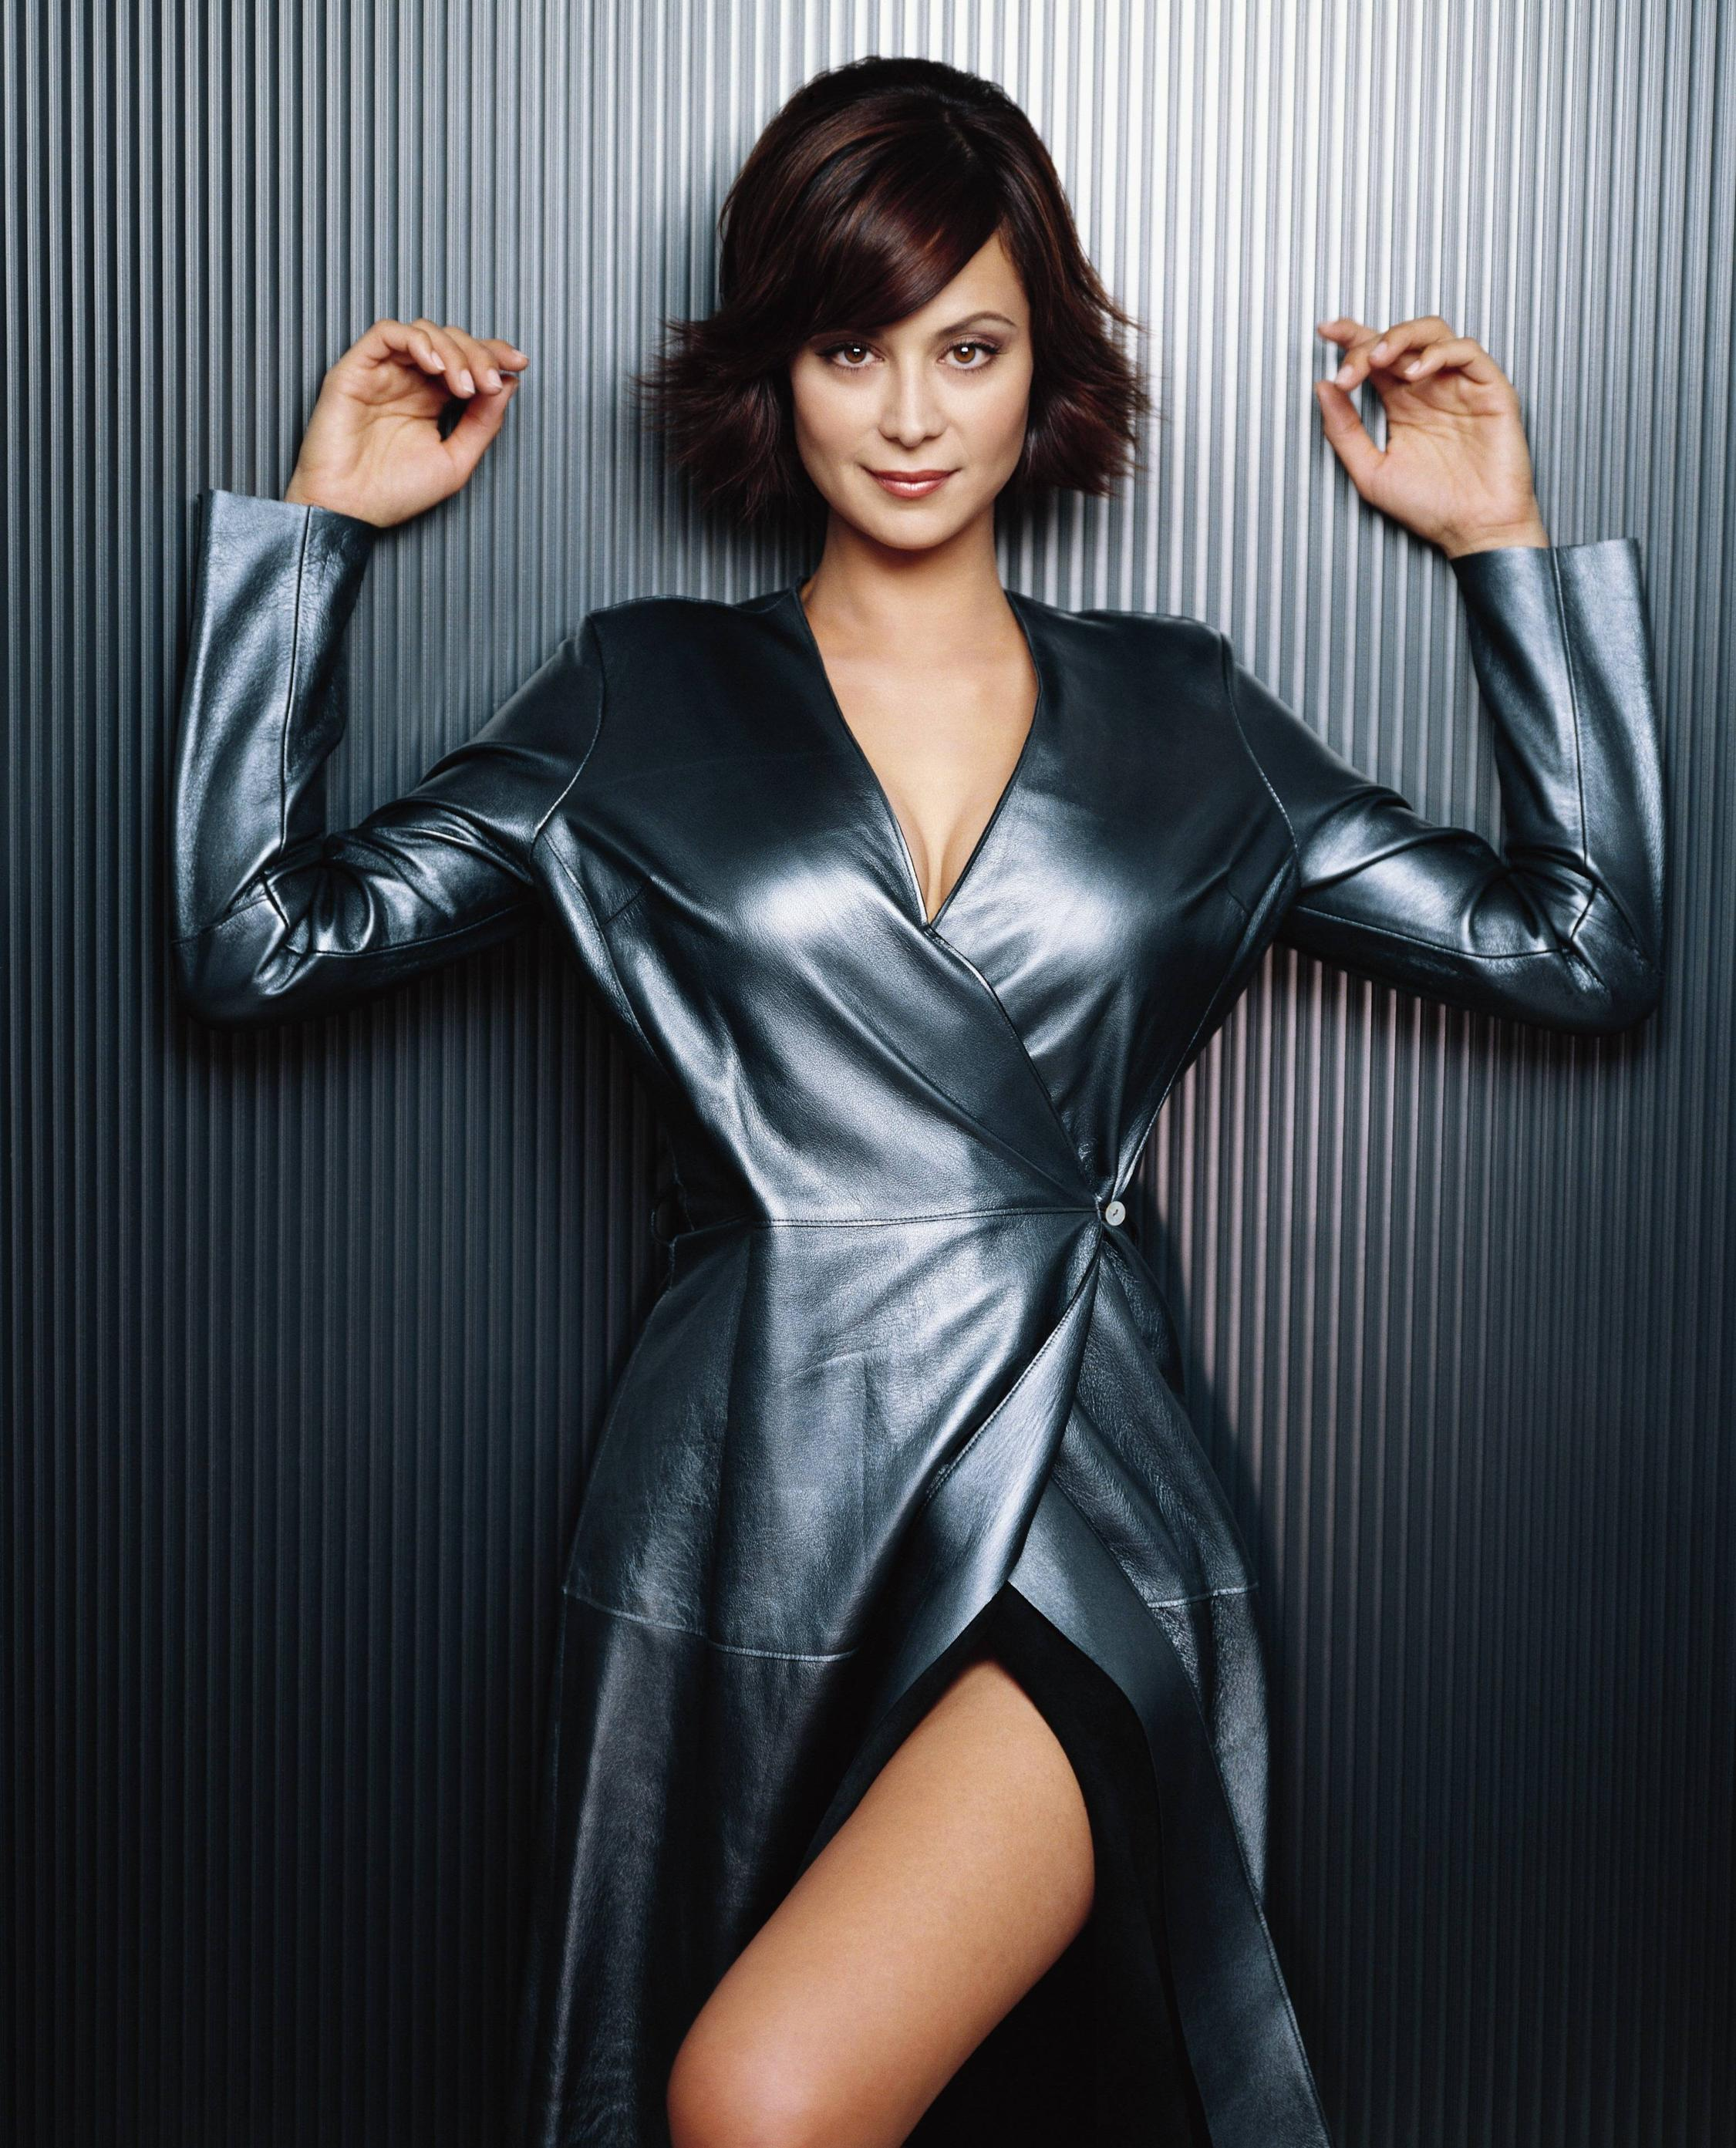 HQ Catherine Bell Wallpapers | File 757.31Kb